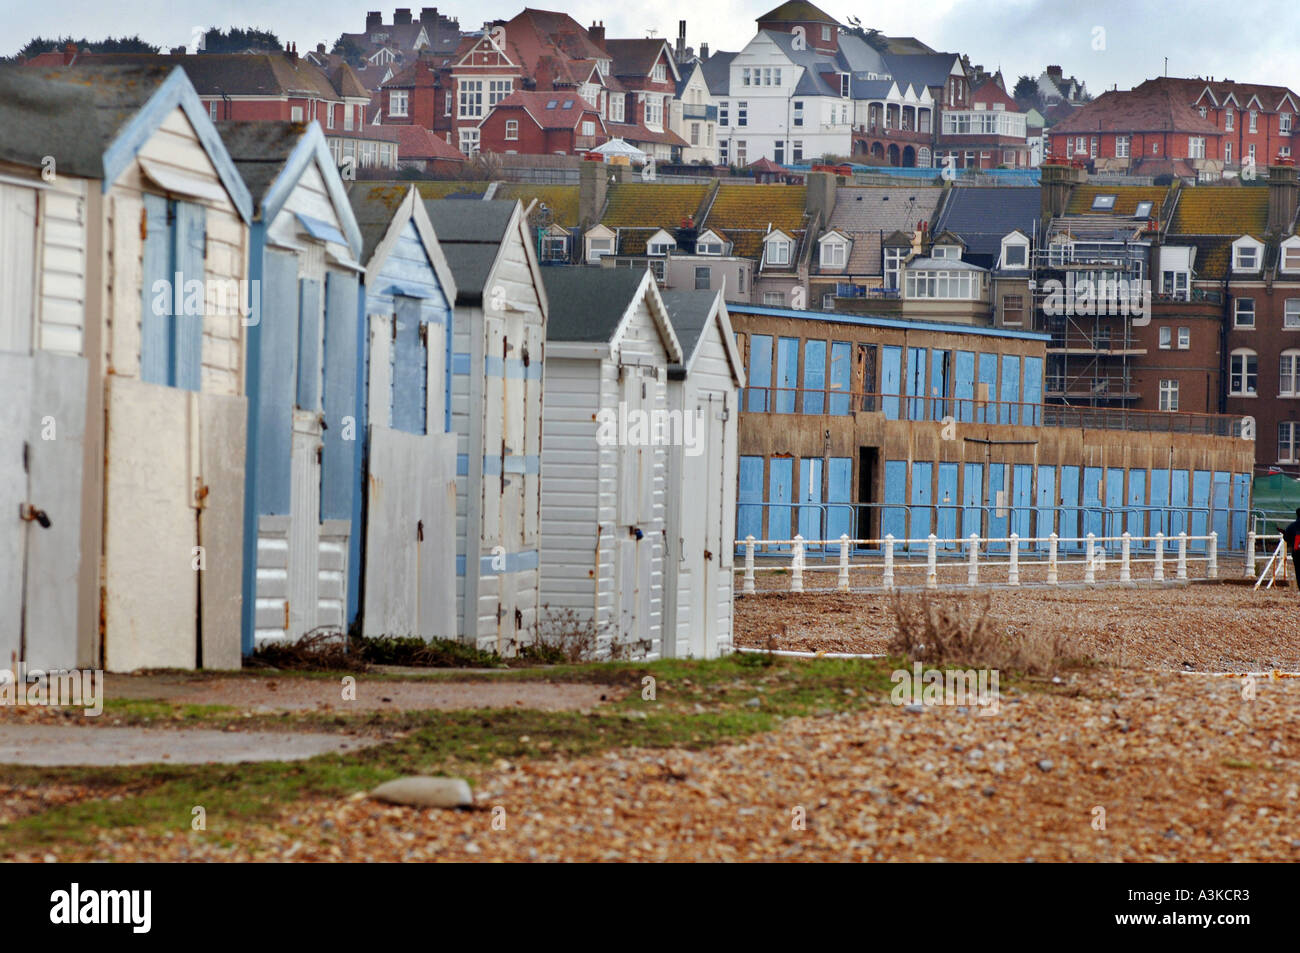 Traditional Edwardian wooden beach huts next to concrete 1930s beach chalets at St Leonards on Sea,  East Sussex - Stock Image